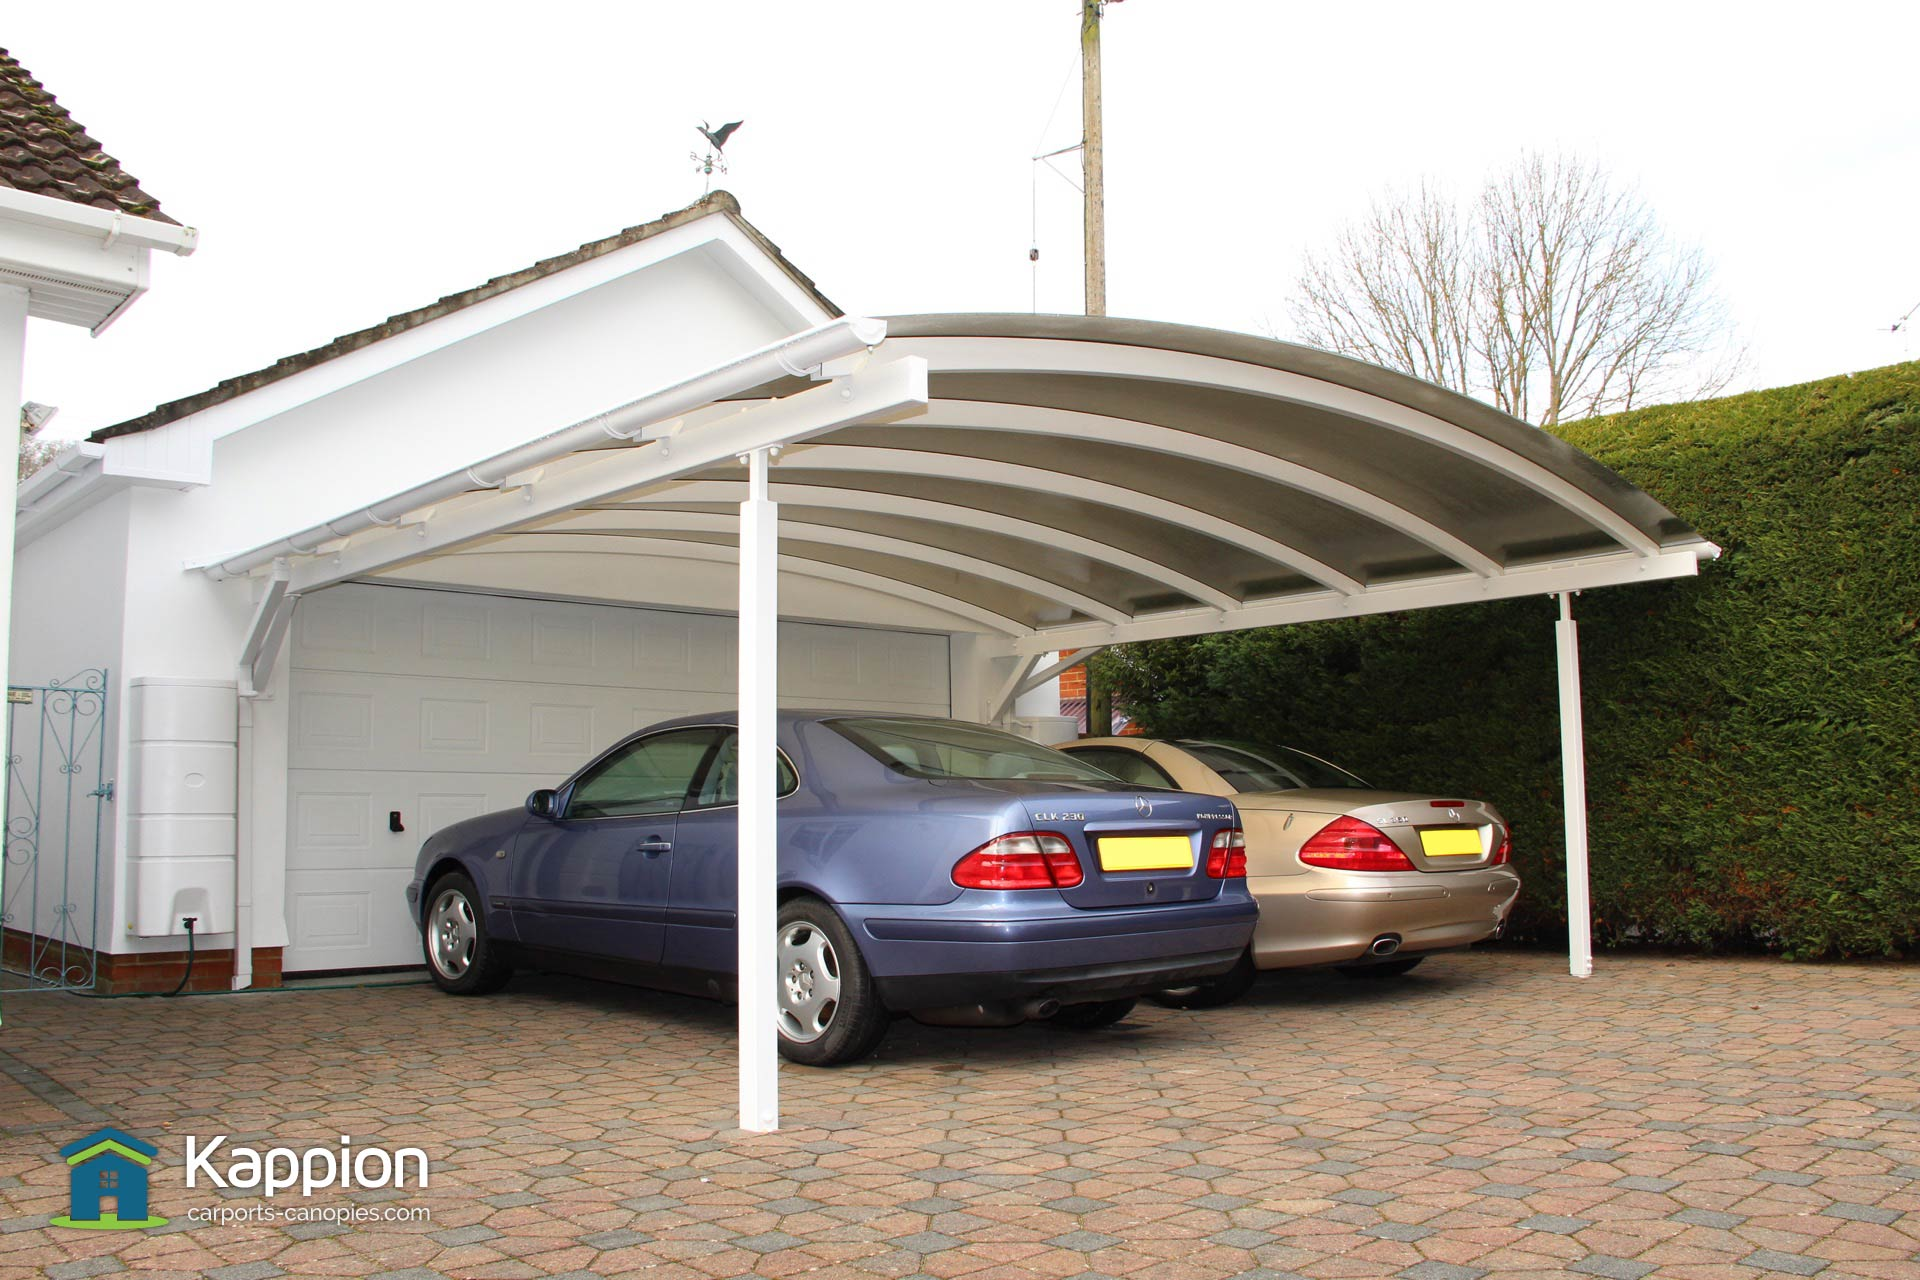 double carport the ultimate two car canopy kappion